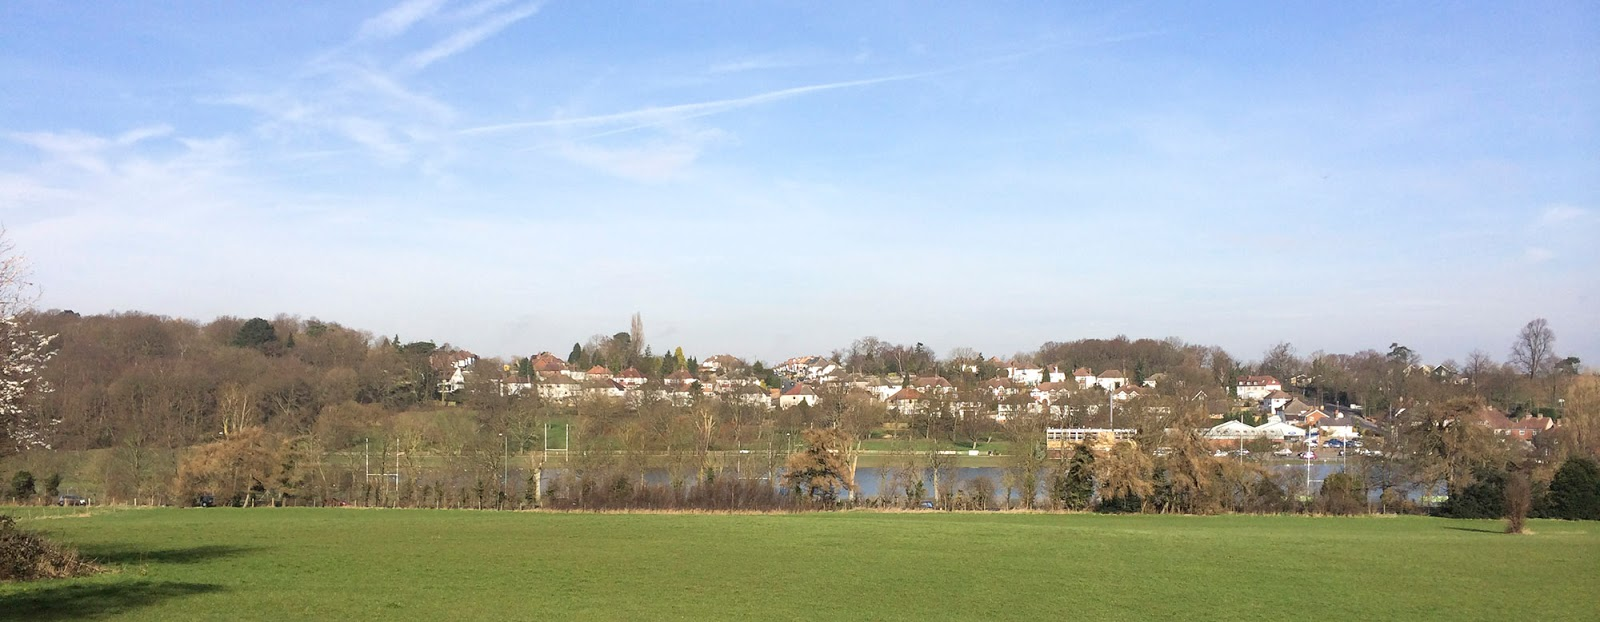 The flooded Sparrow's Den rugby pitches seen from the steps of St John's Church, West Wickham.  6 March 2014.